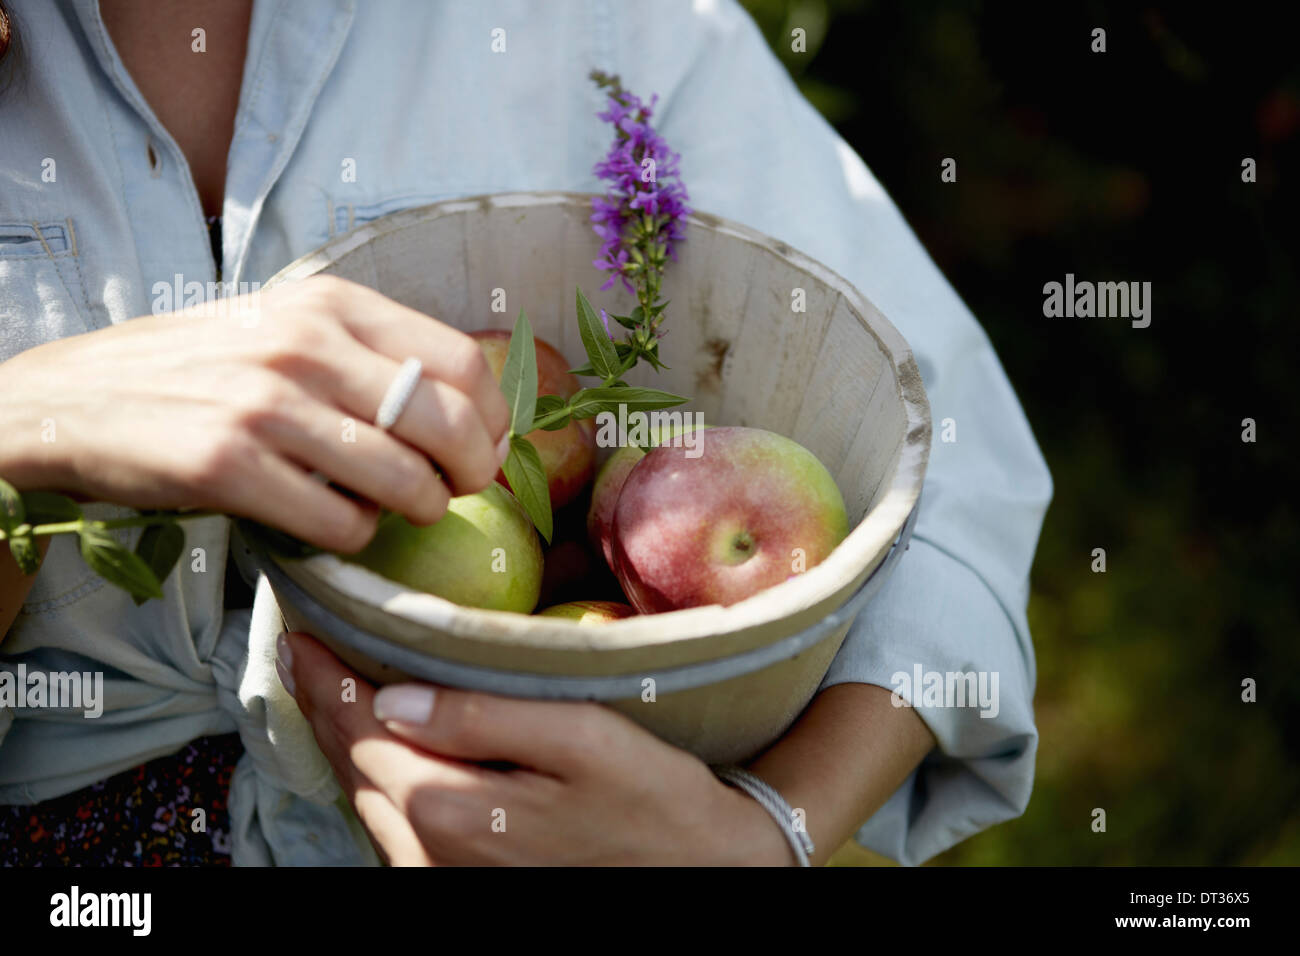 A woman holding a pottery bowl with fresh picked apples and a small foxglove flower - Stock Image